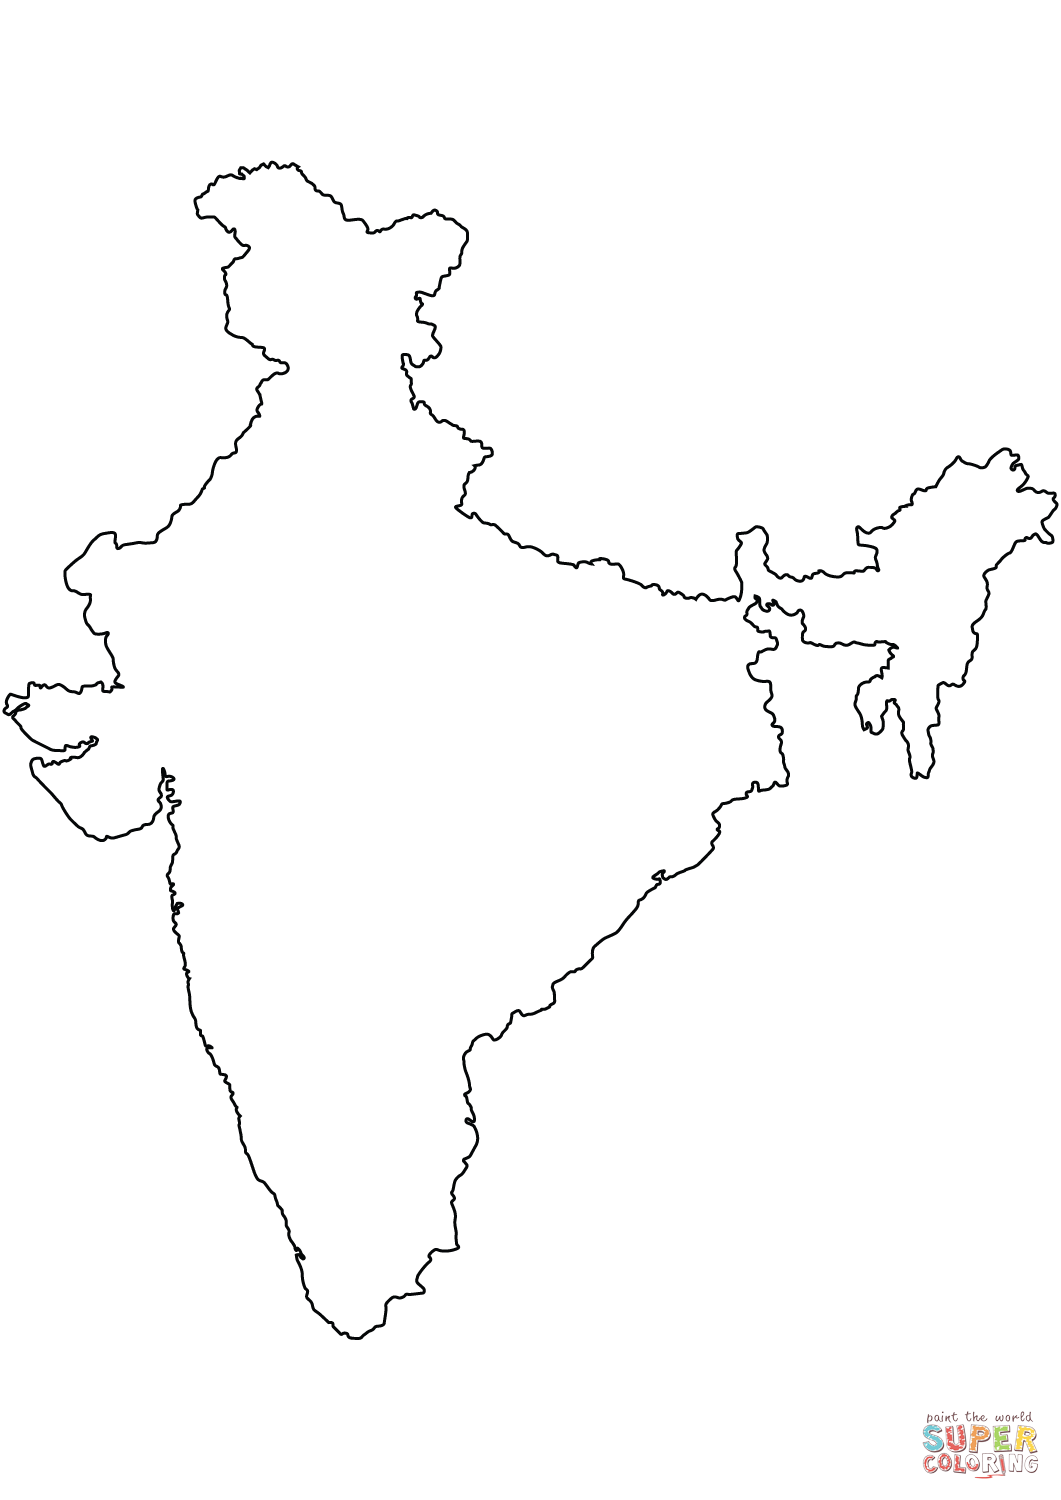 India Blank Outline Map Coloring Page